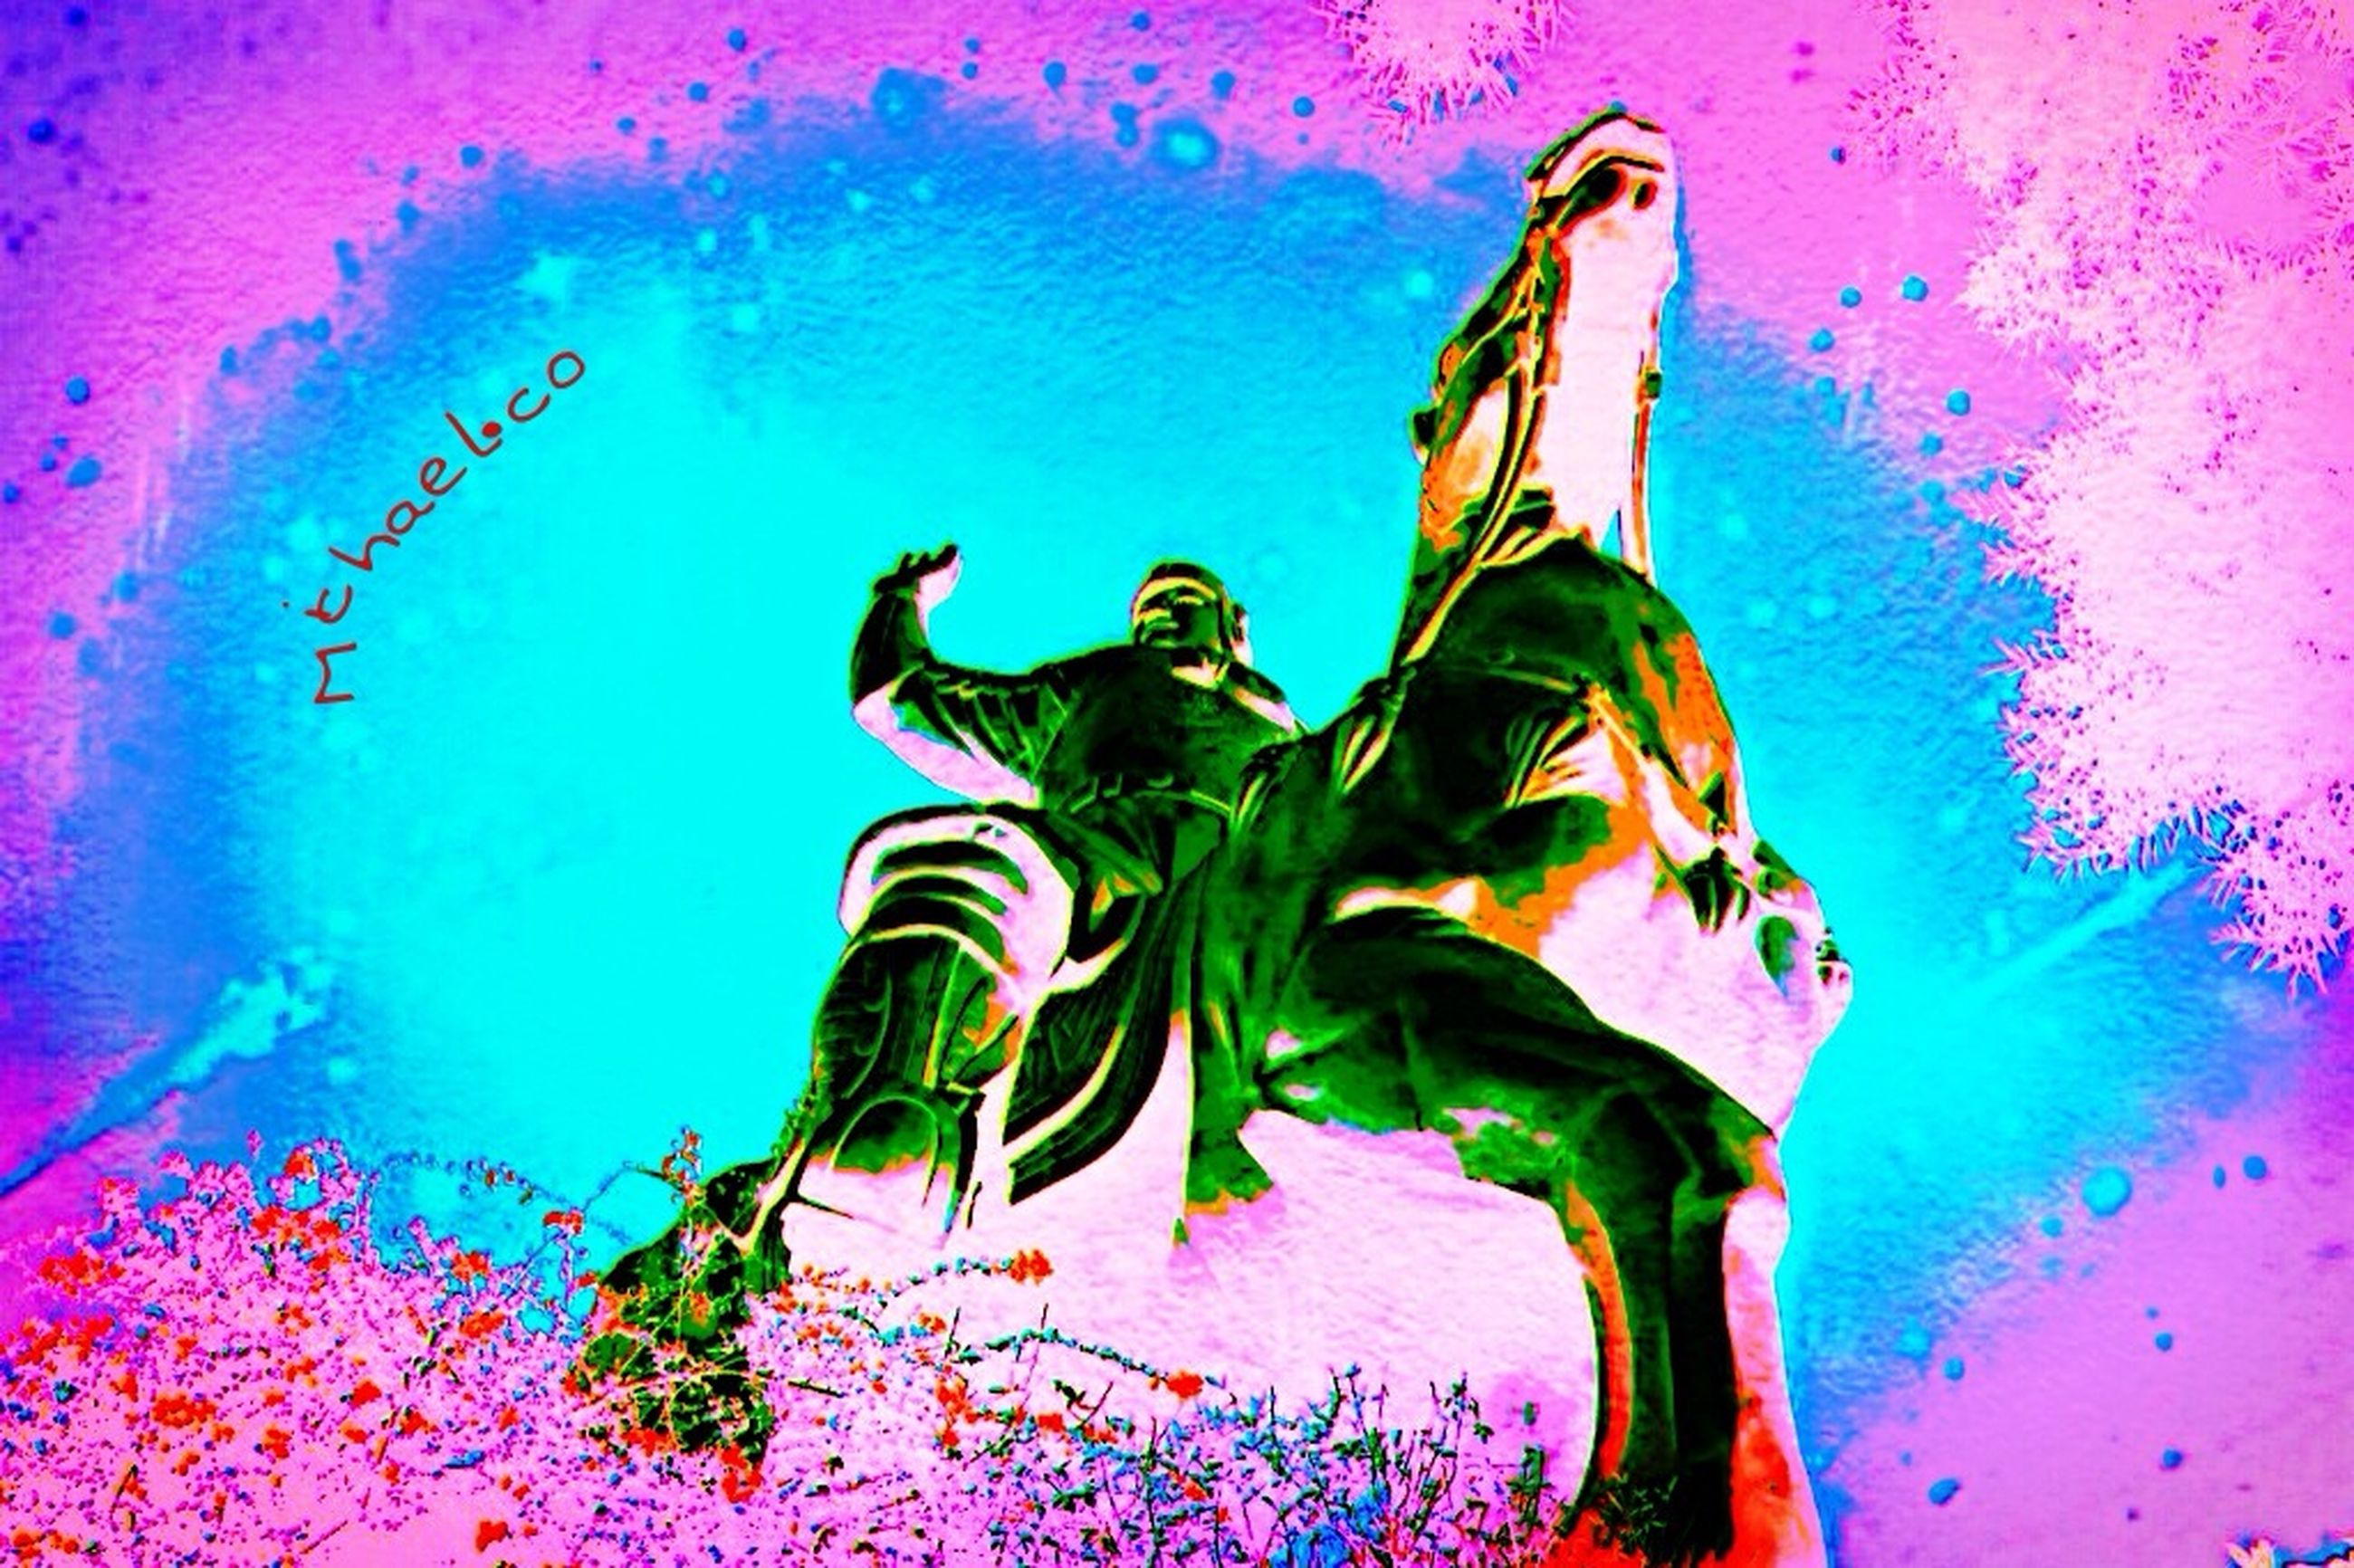 art, art and craft, creativity, human representation, wall - building feature, animal representation, multi colored, pink color, indoors, sculpture, auto post production filter, water, wall, communication, holding